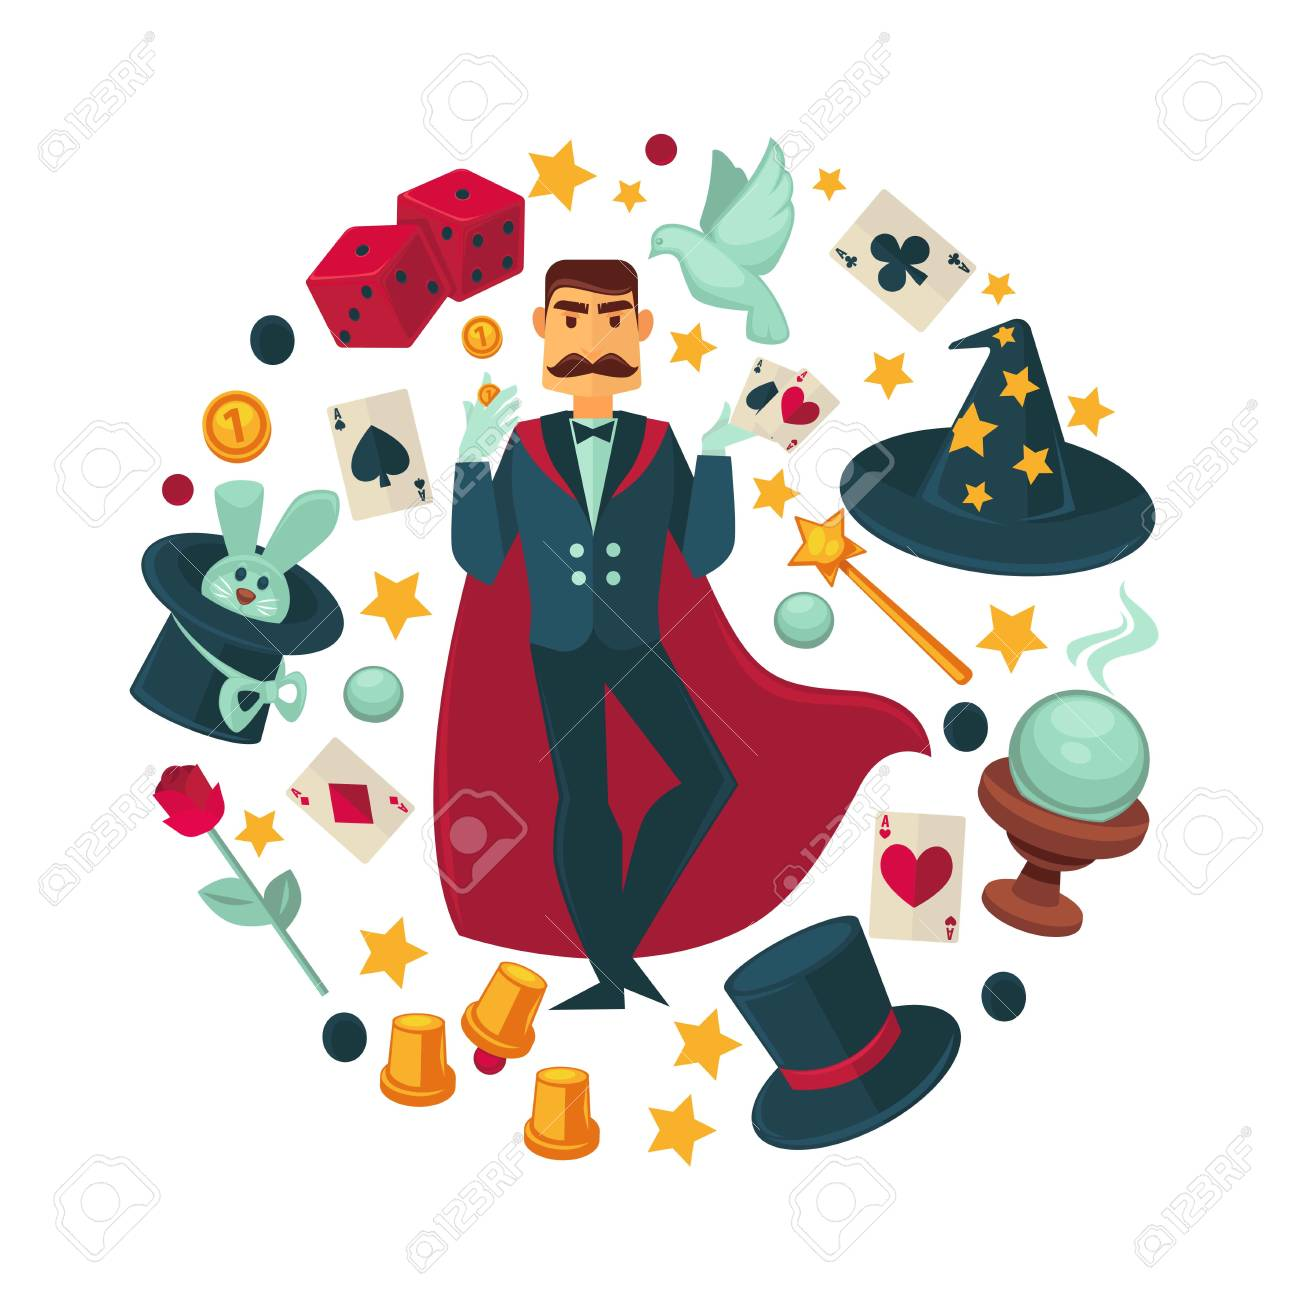 Magician in red cloak surrounded with equipment for tricks - 97476147